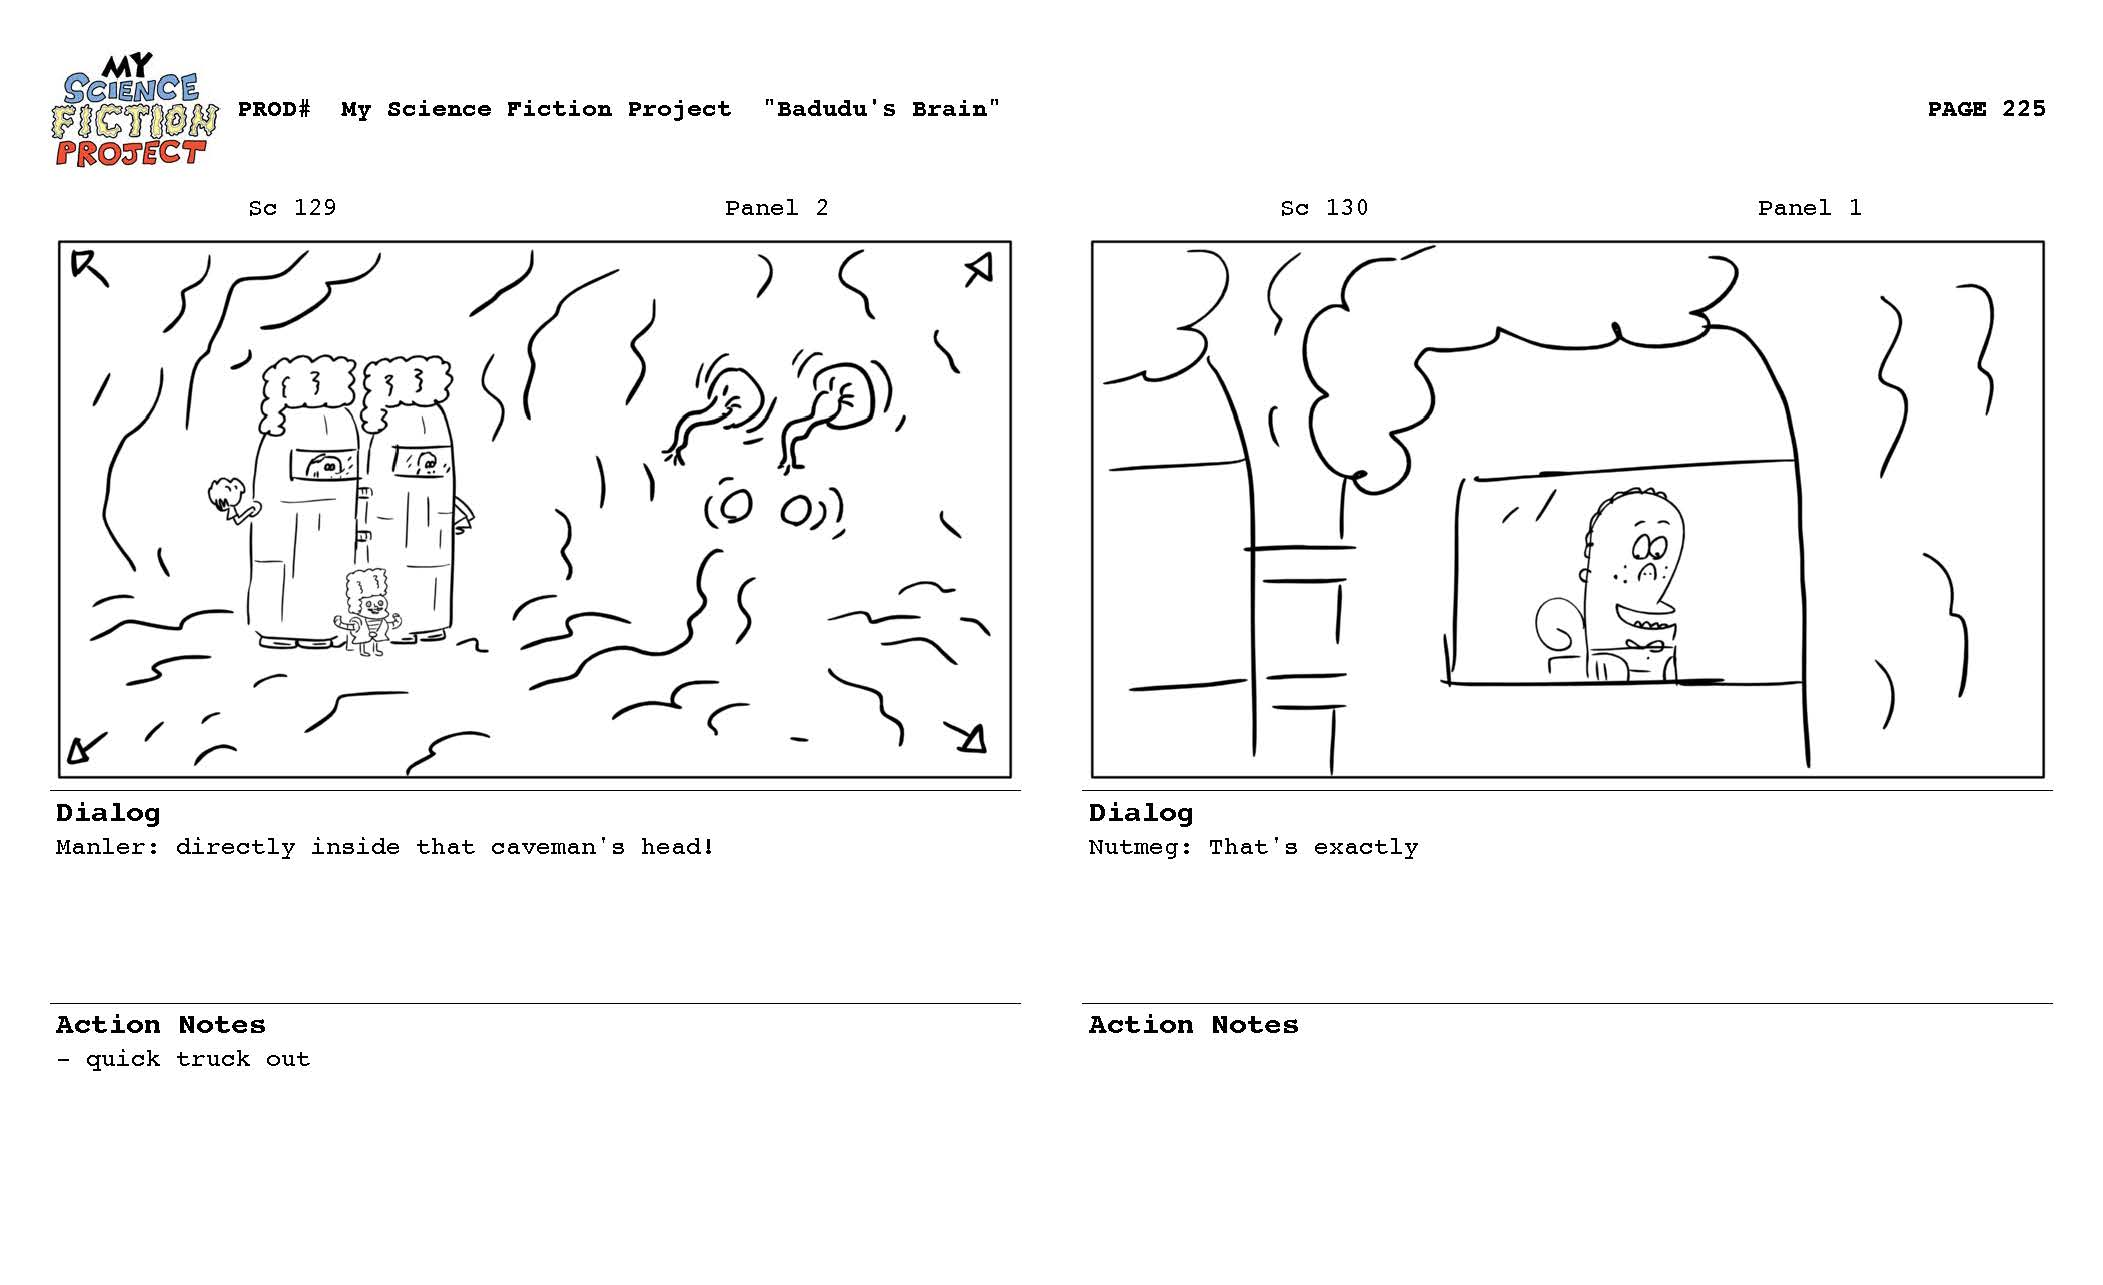 My_Science_Fiction_Project_SB_083112_reduced_Page_225.jpg